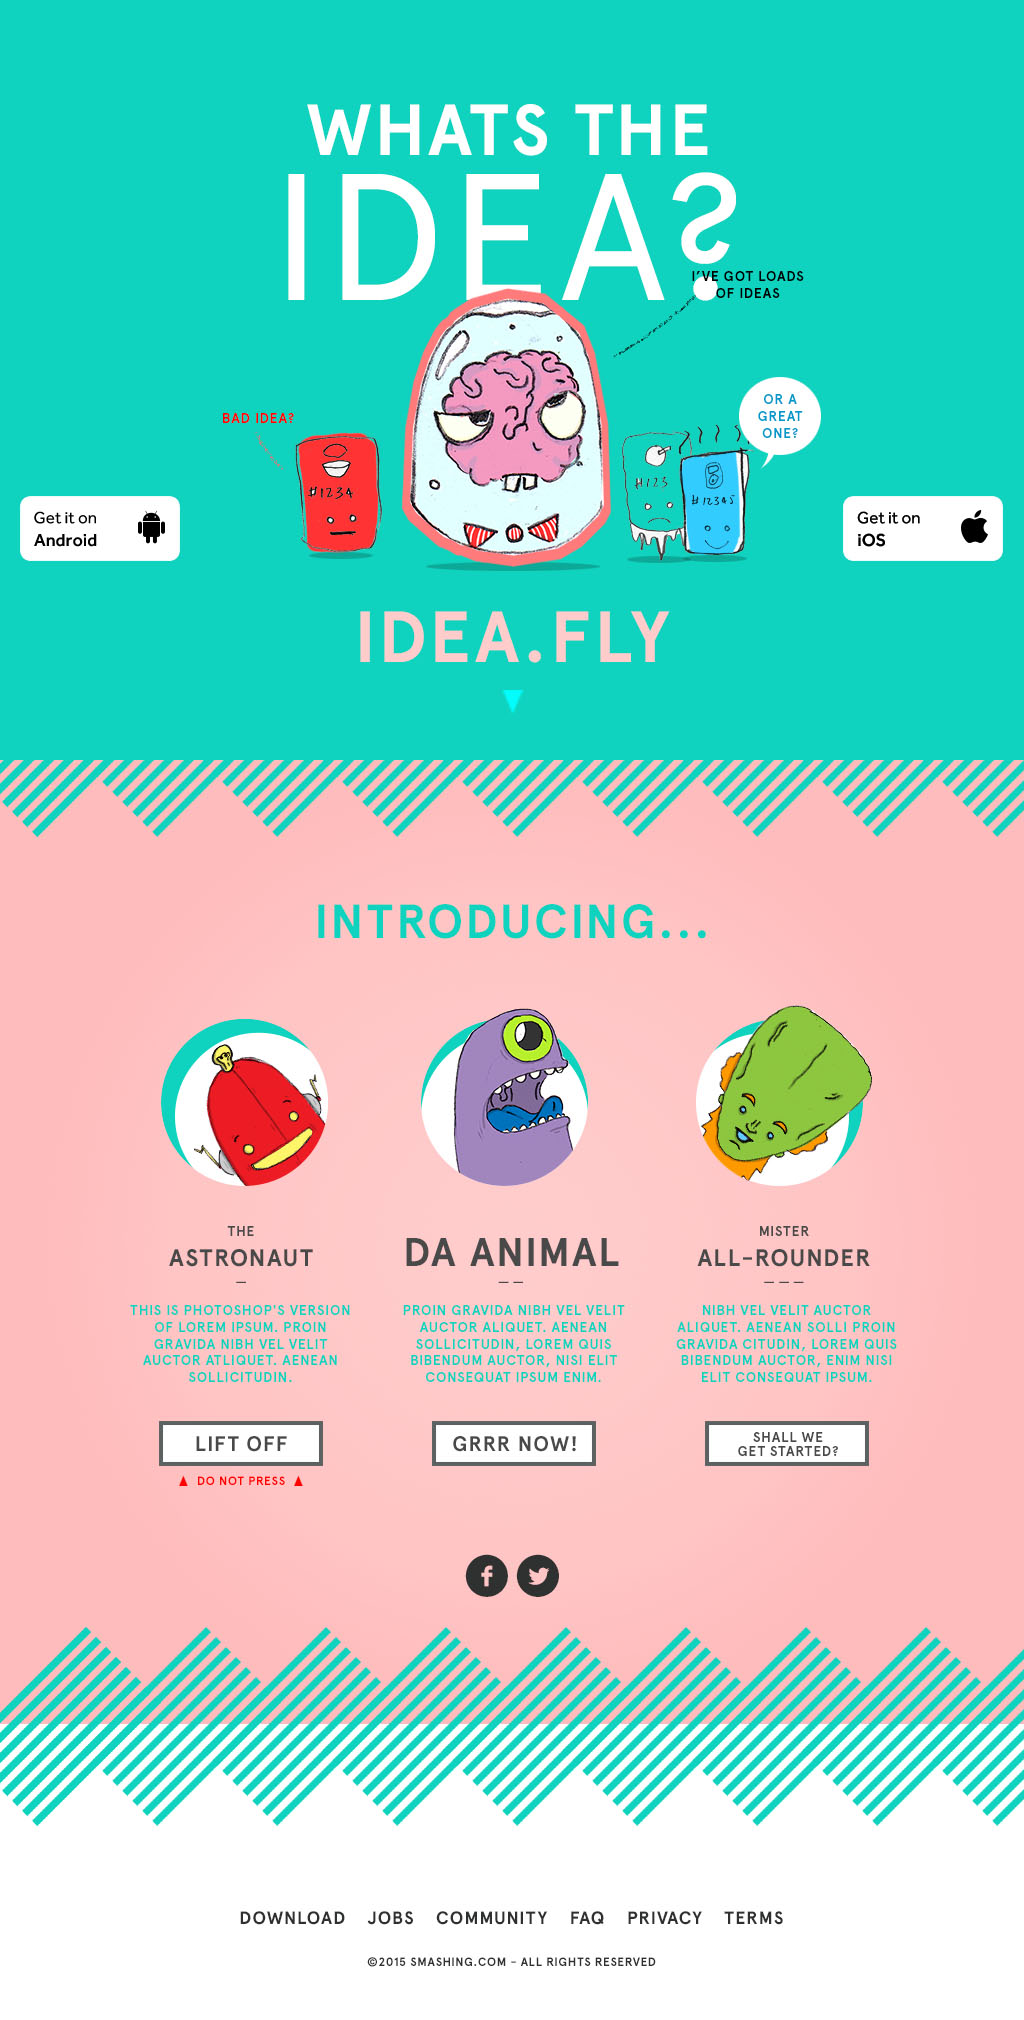 ideafly_characters_01 1 - Graphic Design Ideas